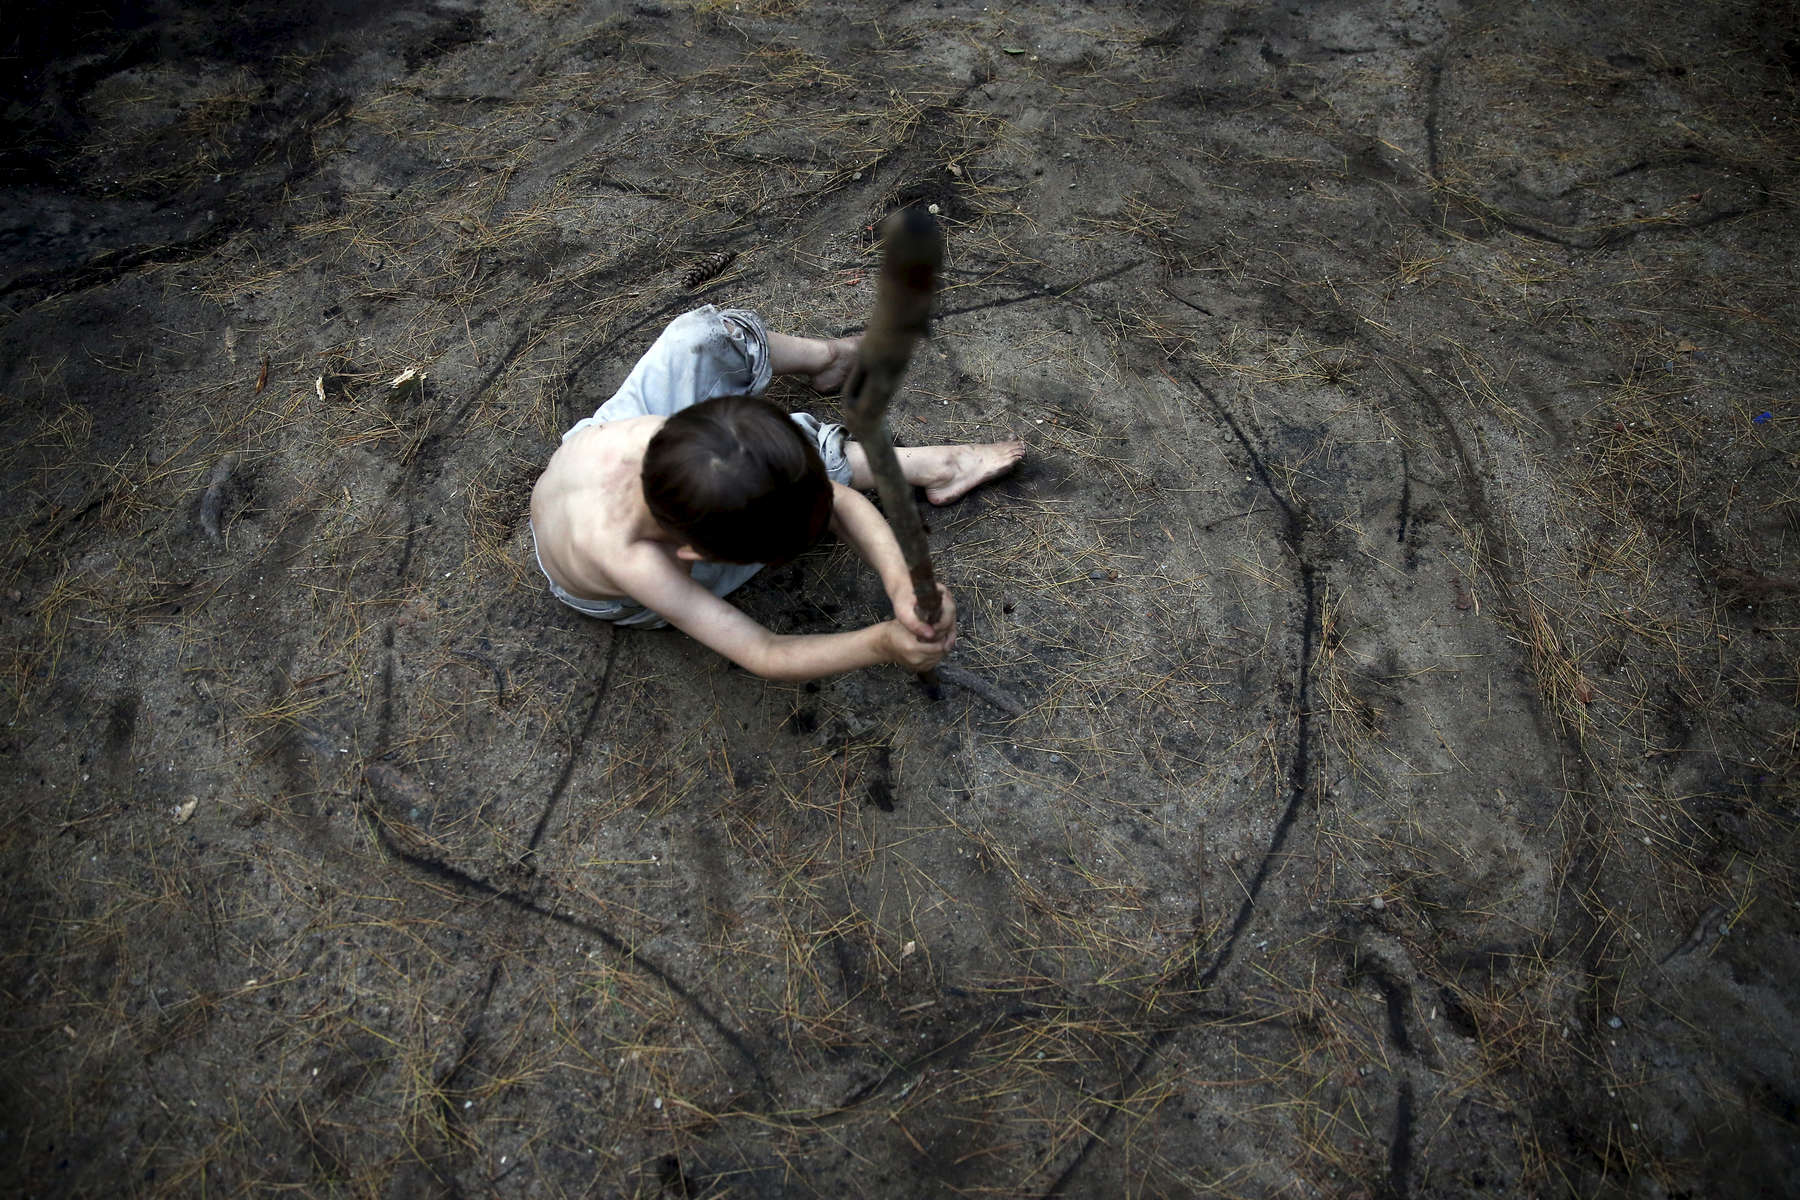 Oxford, Maine -- 6/10/2015--  Gallagher sat in the center of a circle his brother, Strider, had etched around him in the dirt. Jessica Rinaldi/Globe Staff